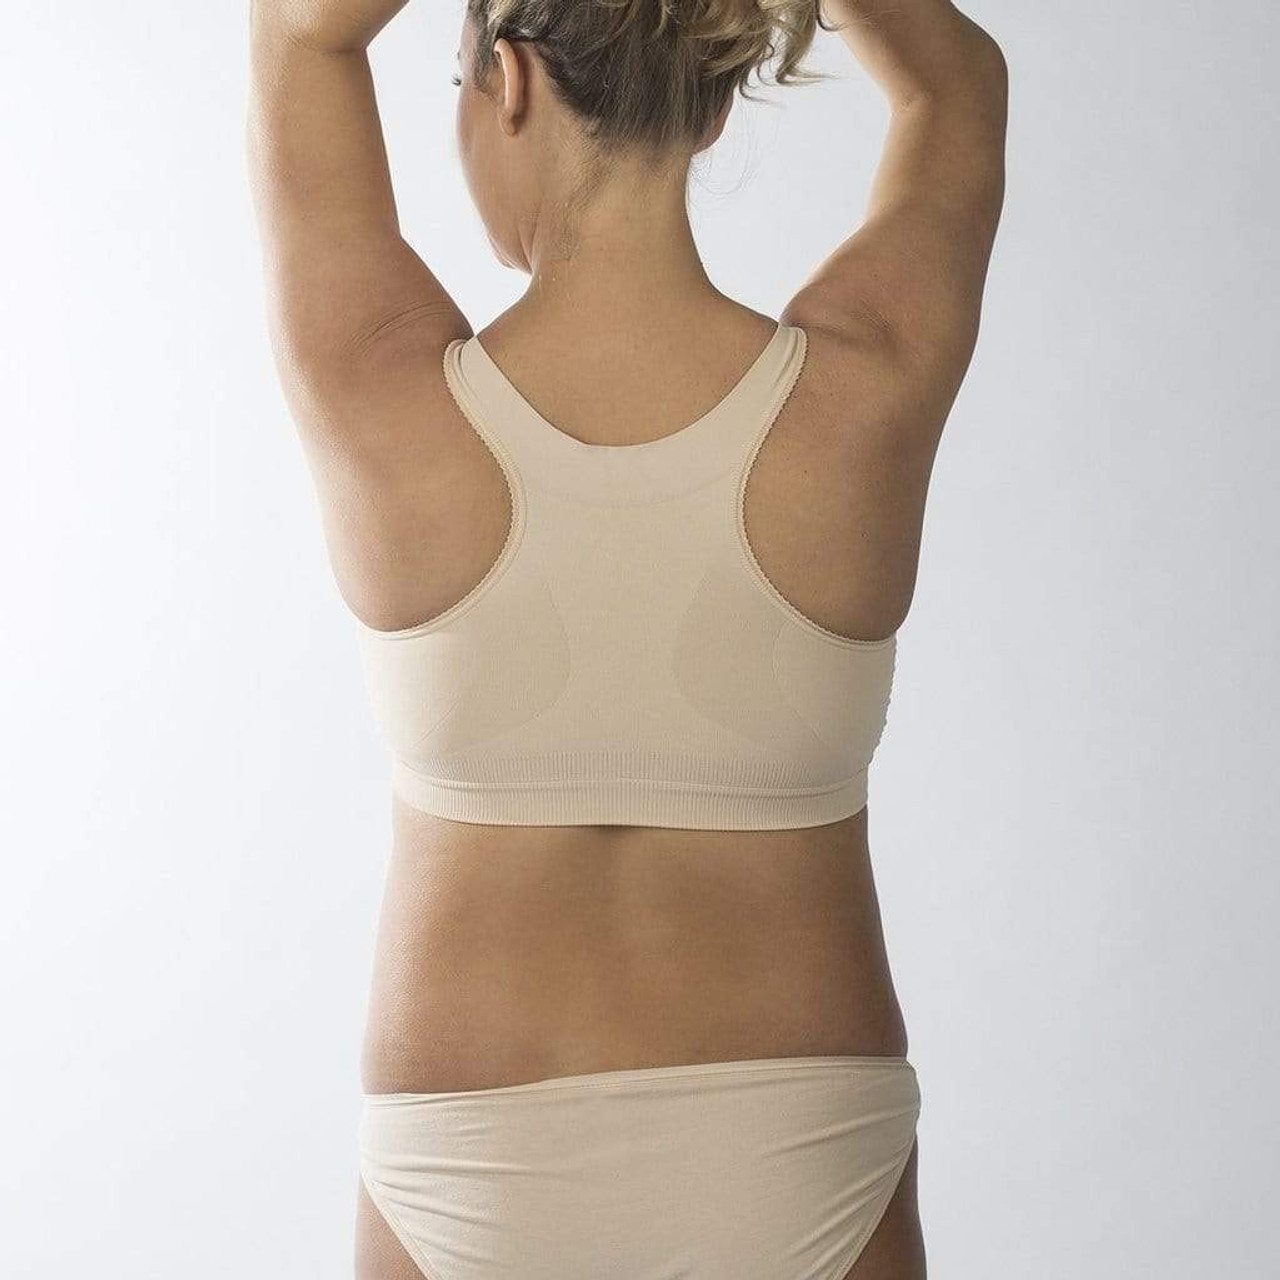 New Beginnings Active Maternity Bra Small at Baby Barn Discounts Wire-free frame, seamless soft cups and high quality microfibre material deliver comfort that is undeniable!